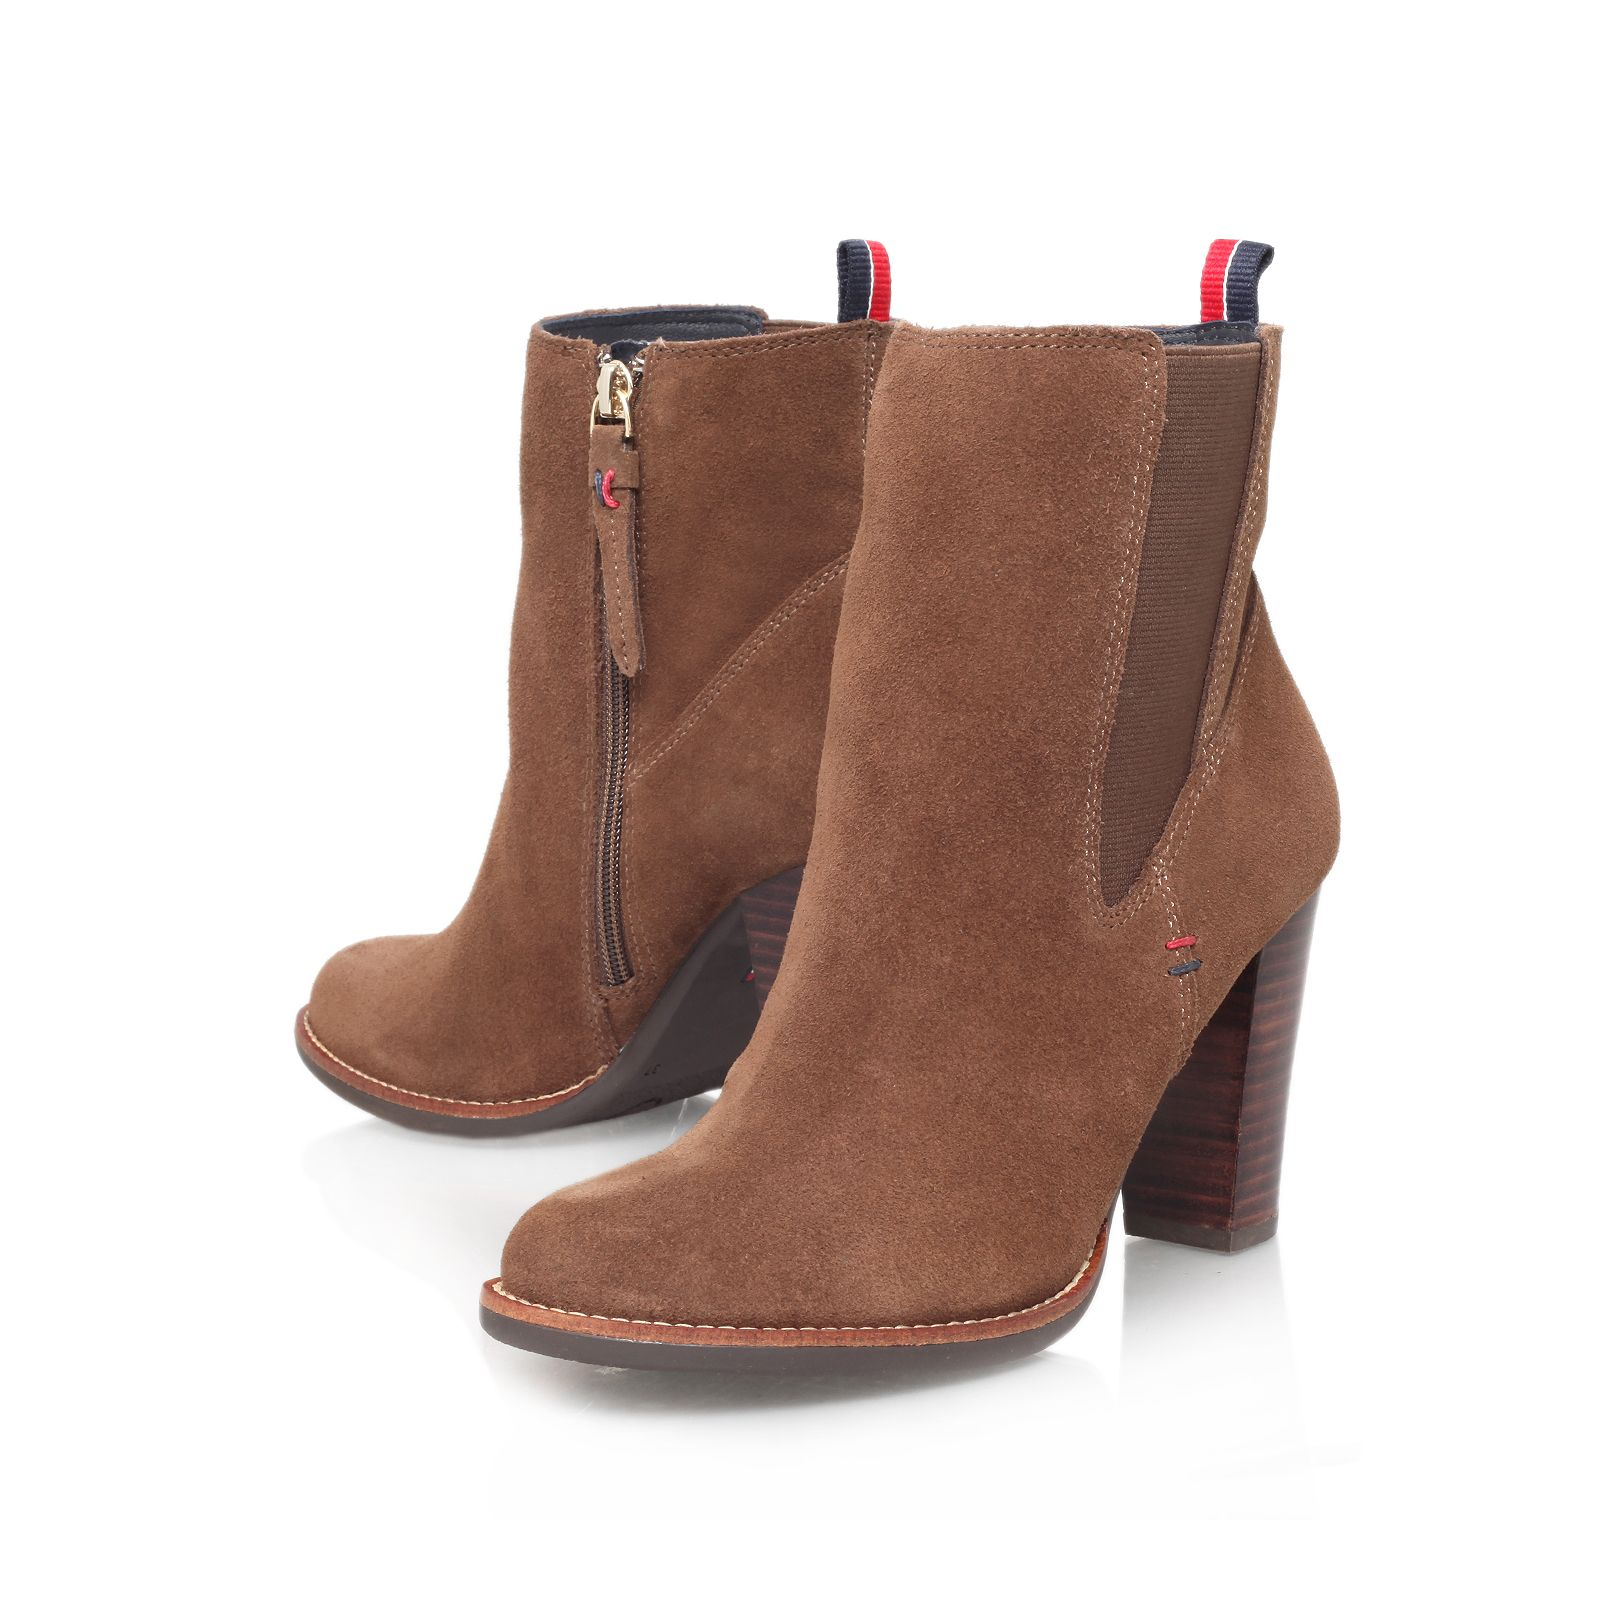 lyst tommy hilfiger nicole high heeled ankle boot in brown. Black Bedroom Furniture Sets. Home Design Ideas